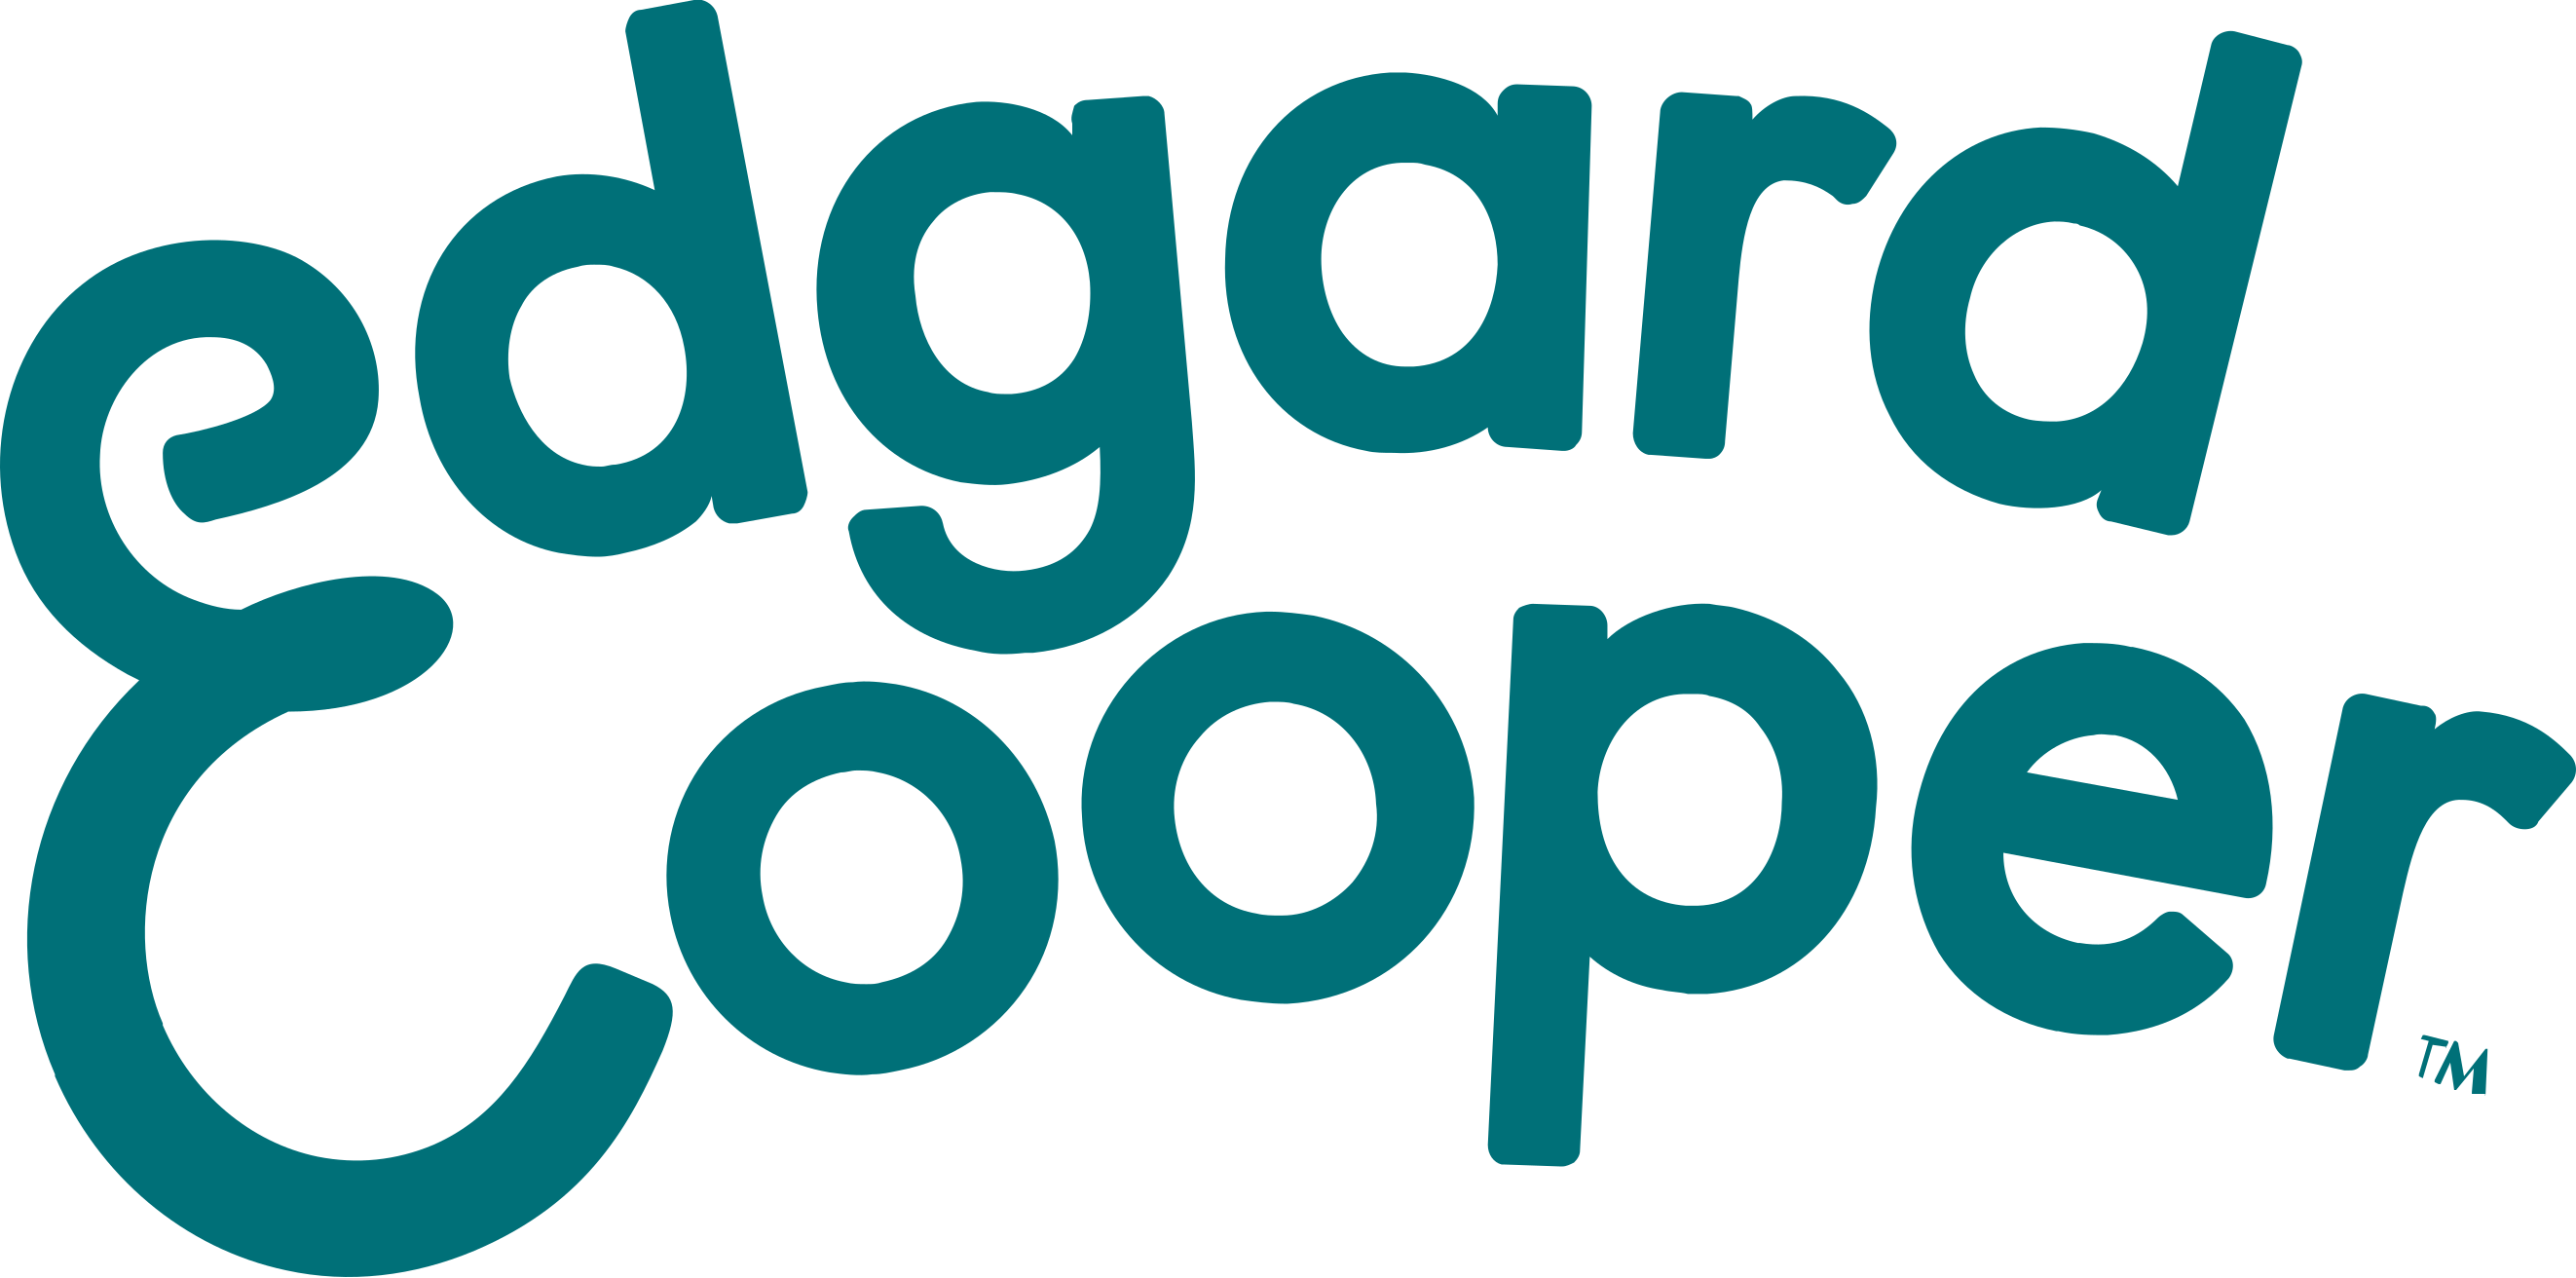 Edgard and Cooper brand logo for their dog food